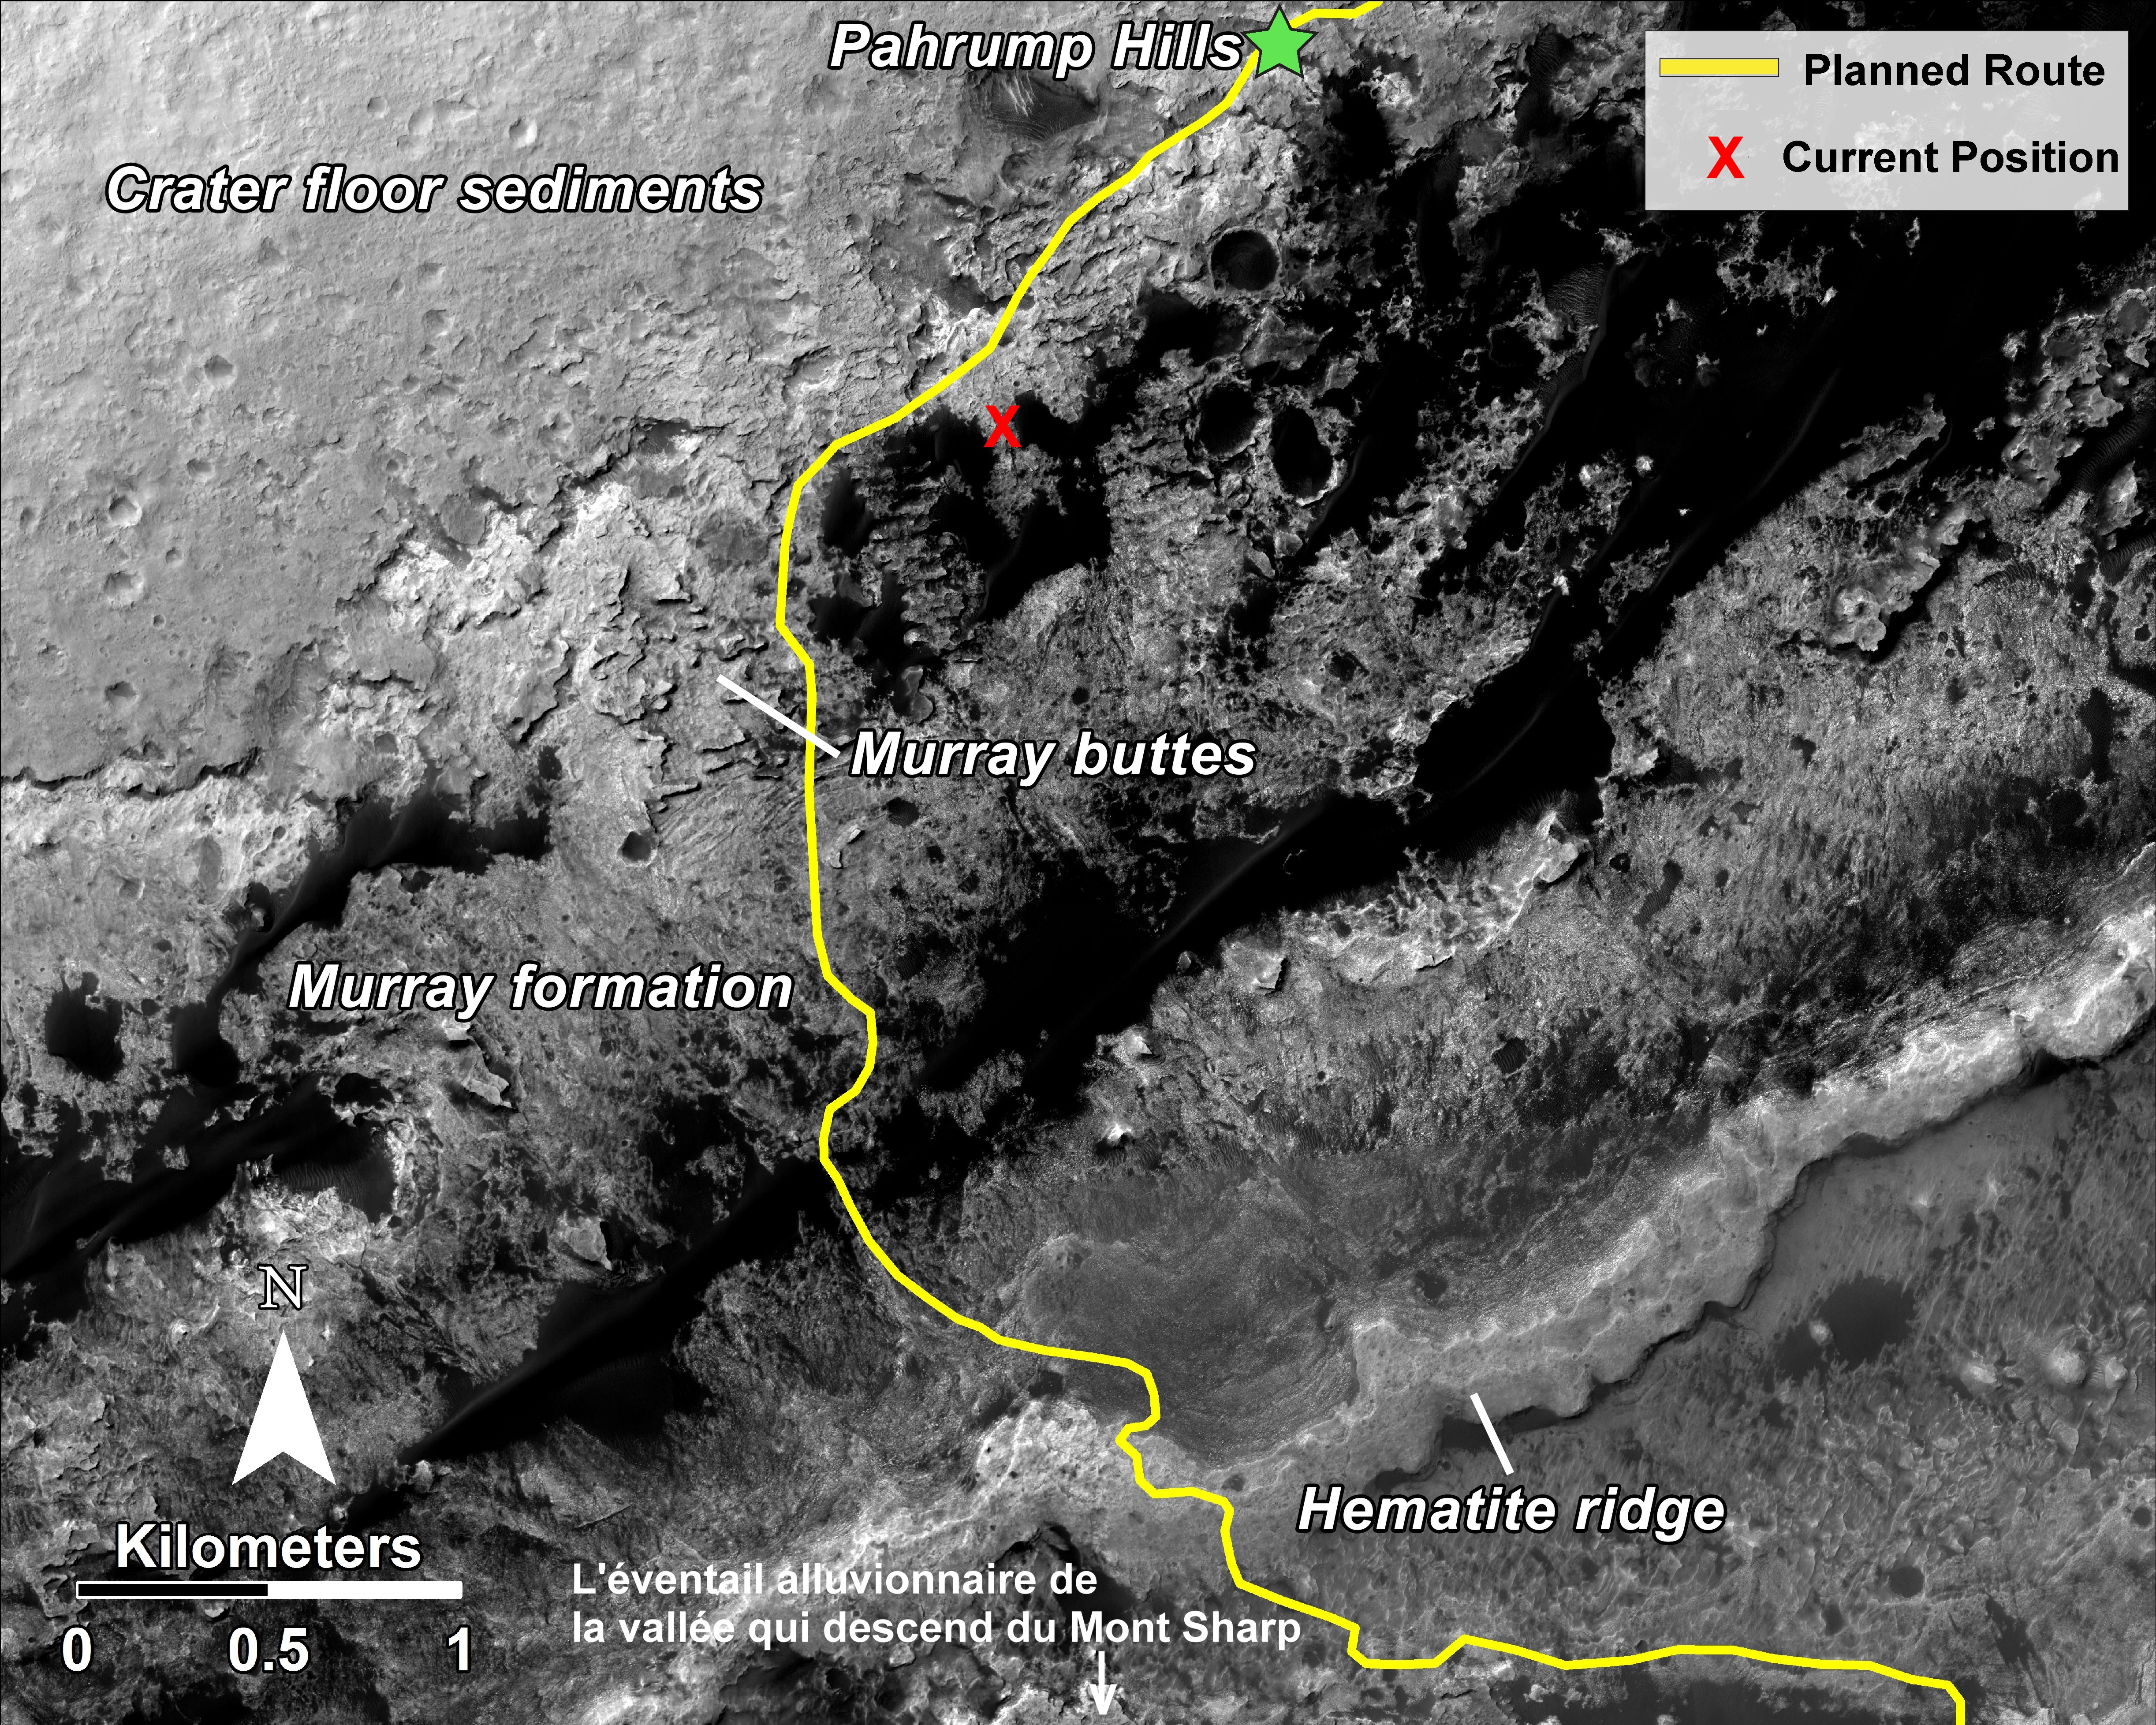 nasa-msl-mro-curiosity-rover-hirise-planned-route-map-pahrump-hills-to-mount-sharp-pia18780-full-renseigné-1